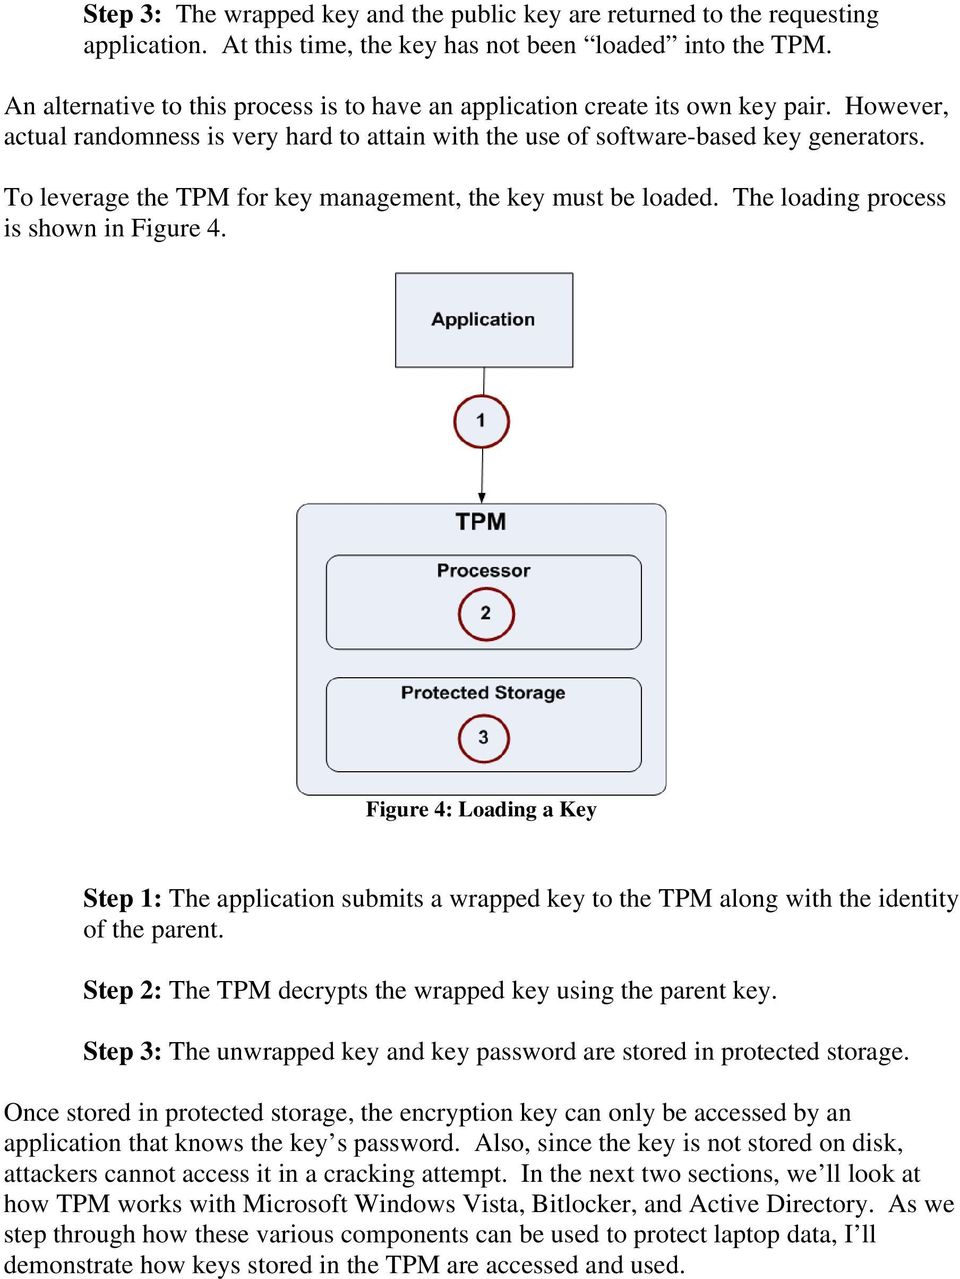 To leverage the TPM for key management, the key must be loaded. The loading process is shown in Figure 4.